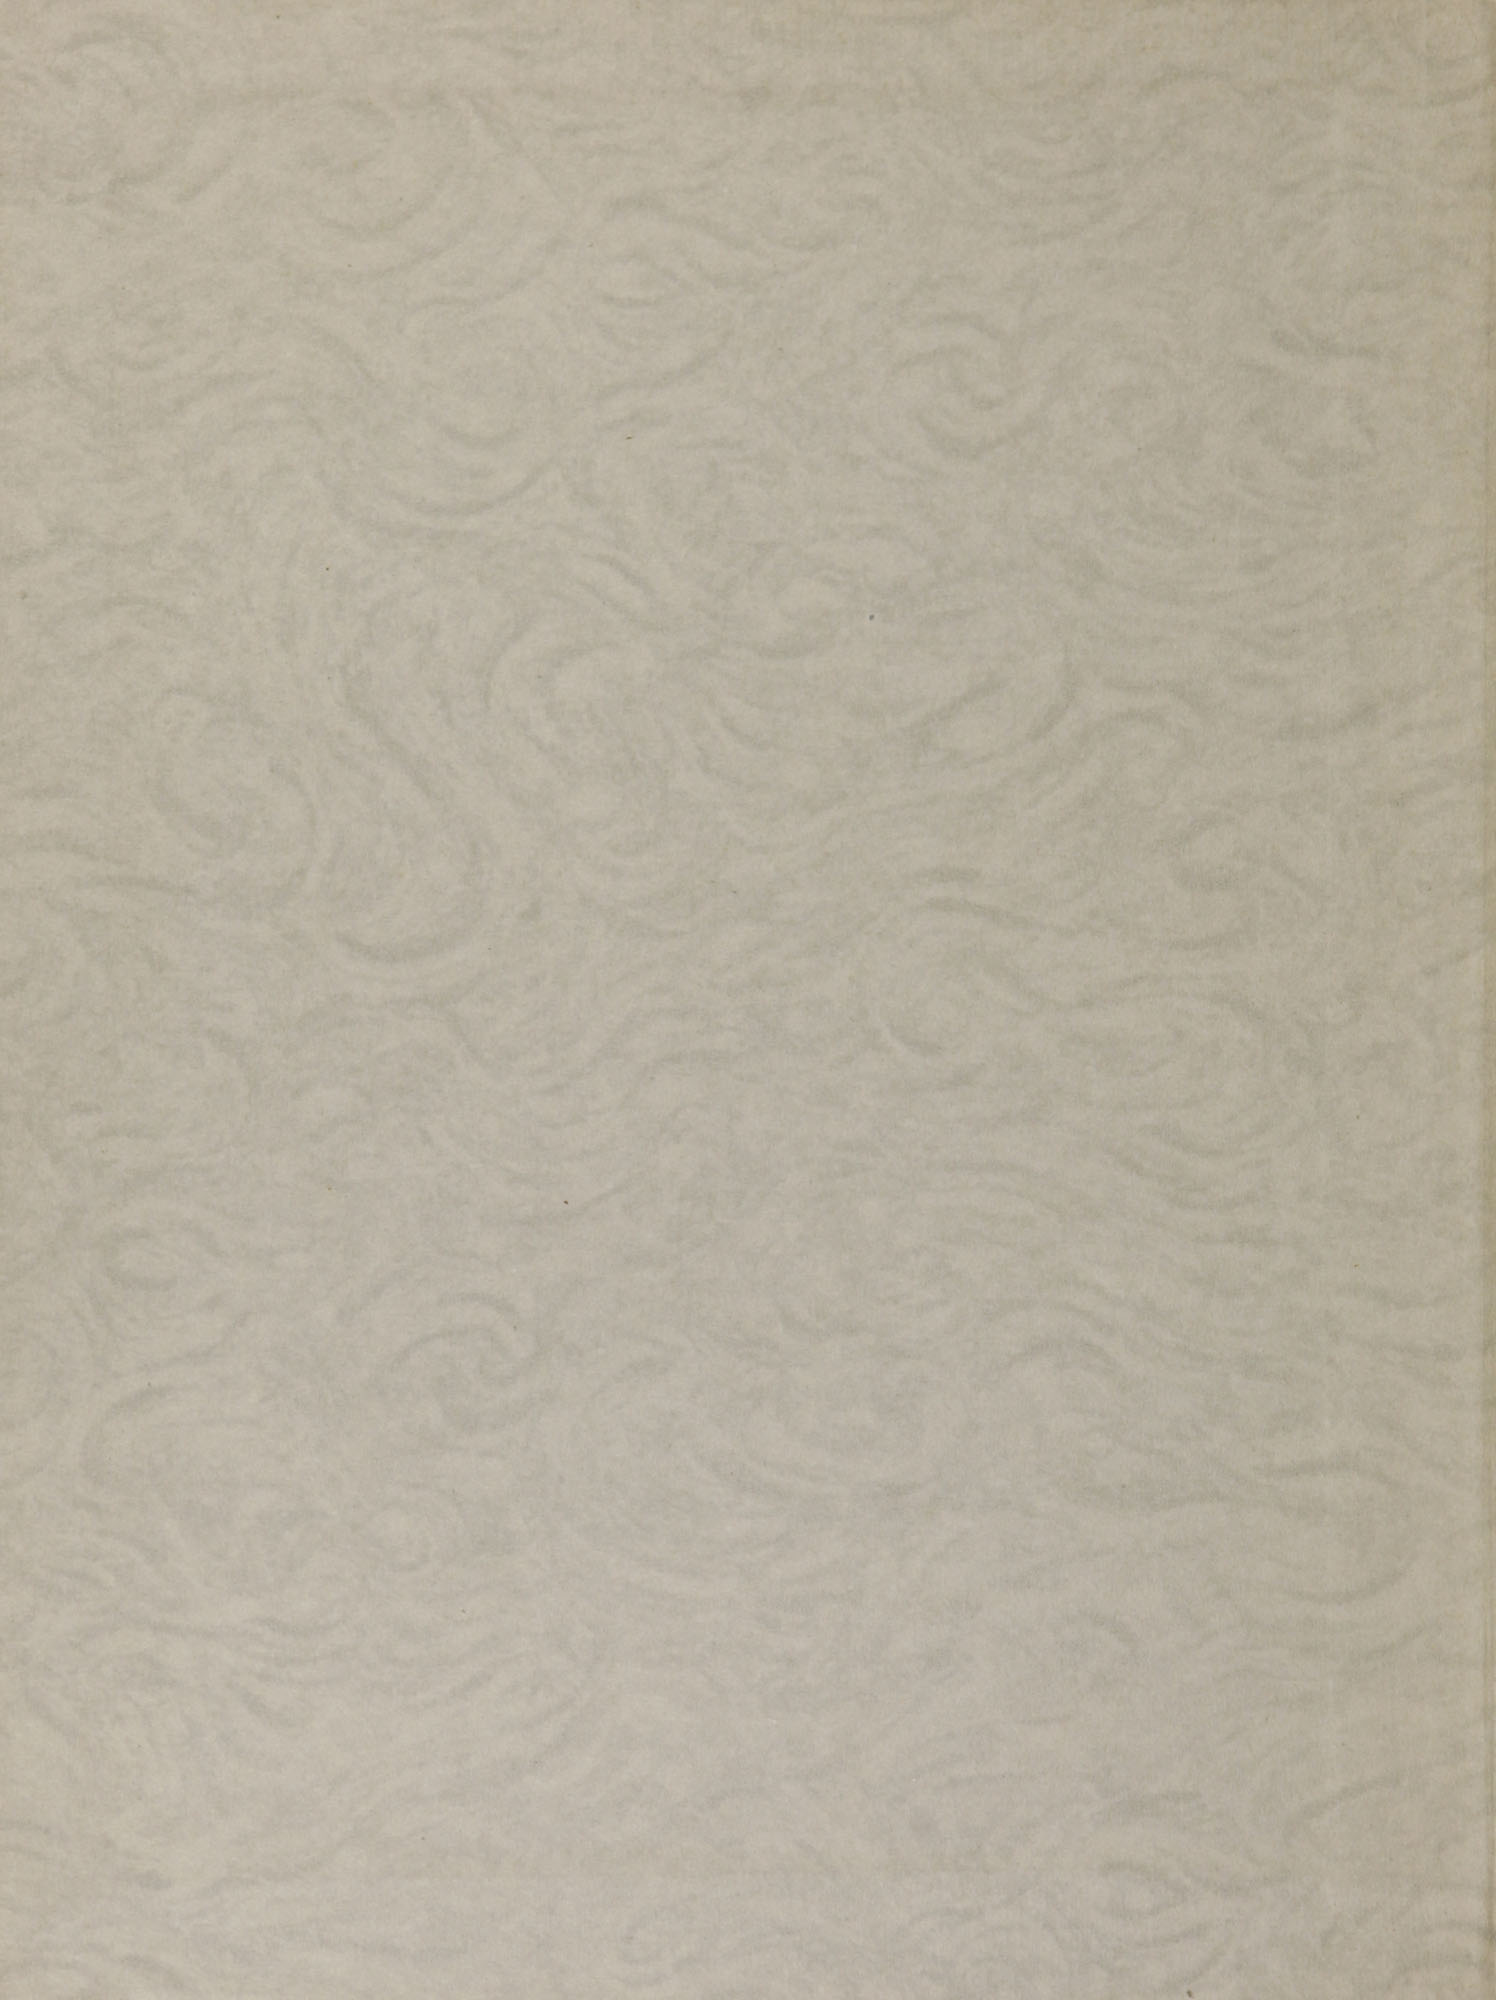 College of Charleston Magazine, 1937-1938, inside front cover